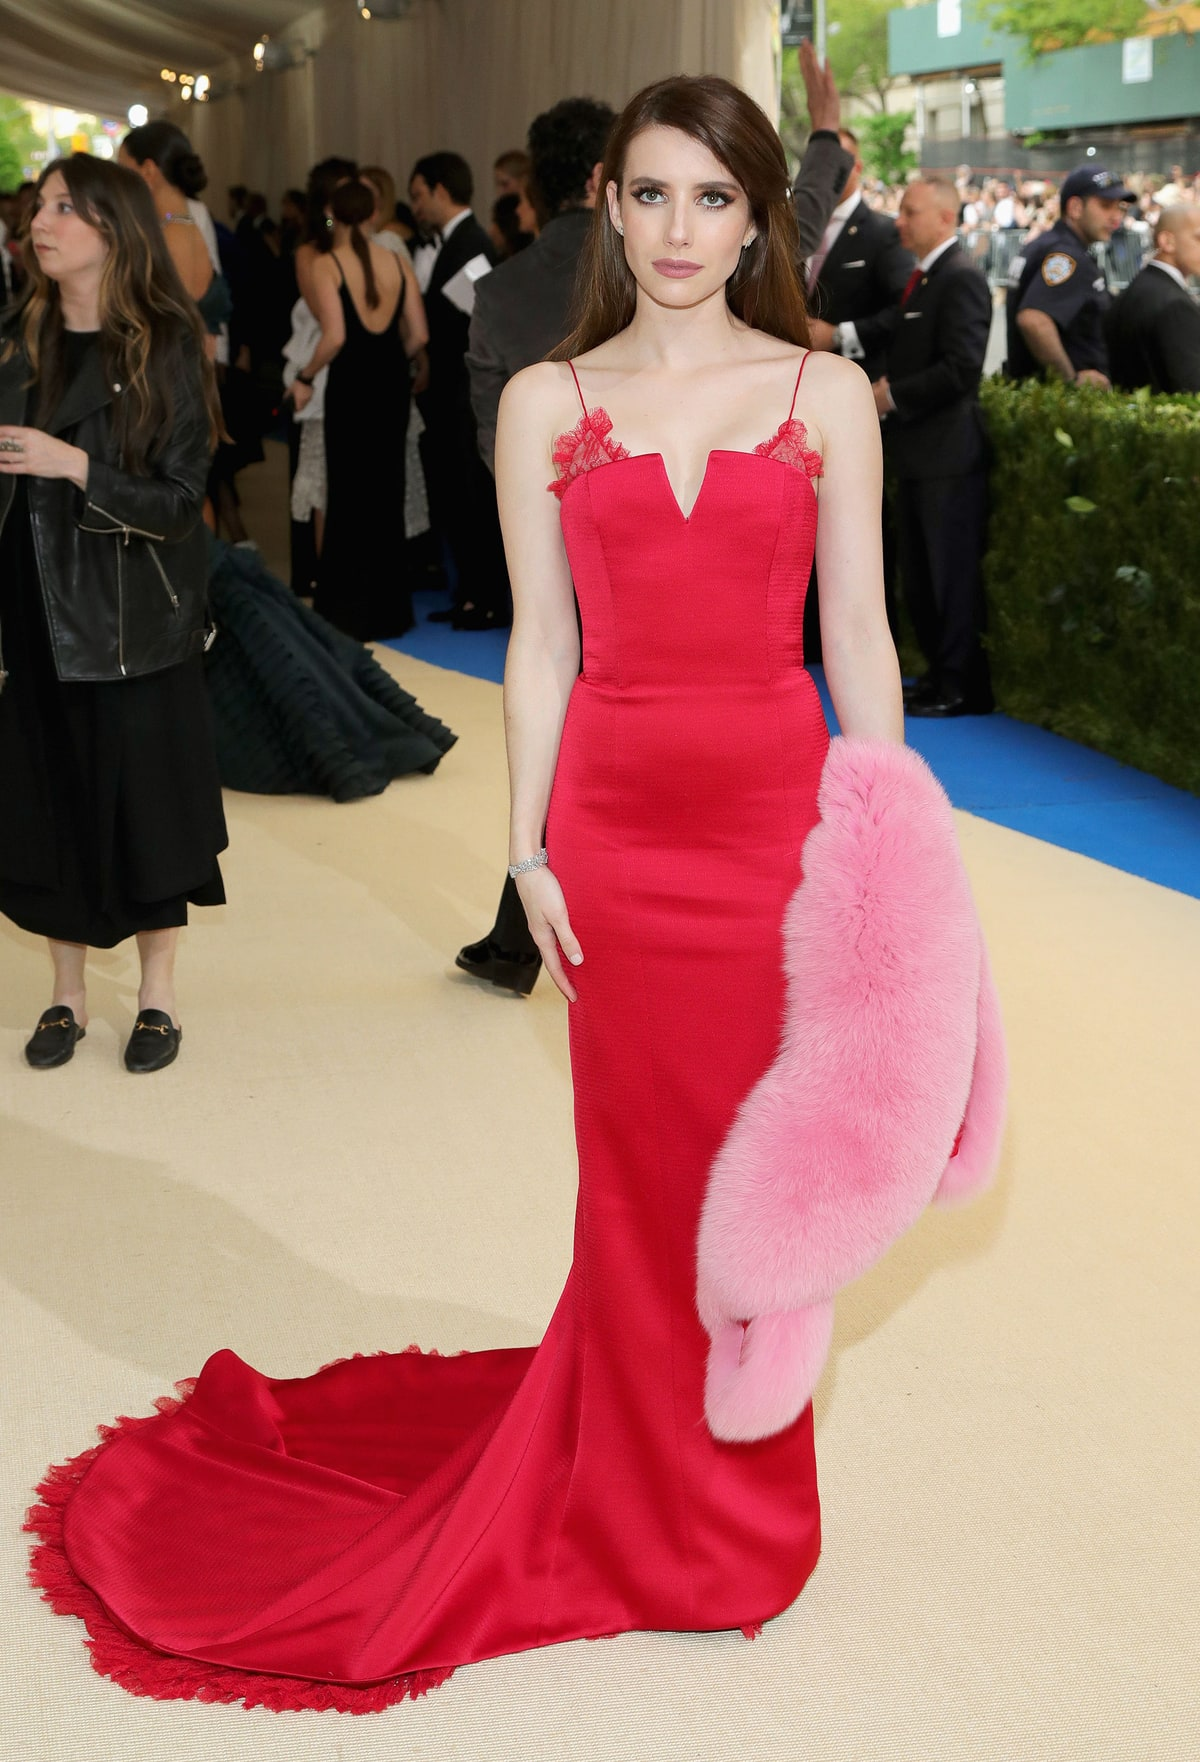 Emma Roberts   in Diane Von Furstenberg.  Hello TV-star! She looks amazing in this deep coral colored gown. We could have lived without the stole but she is serving fierceness in this perfectly altered dress with a fringe train.